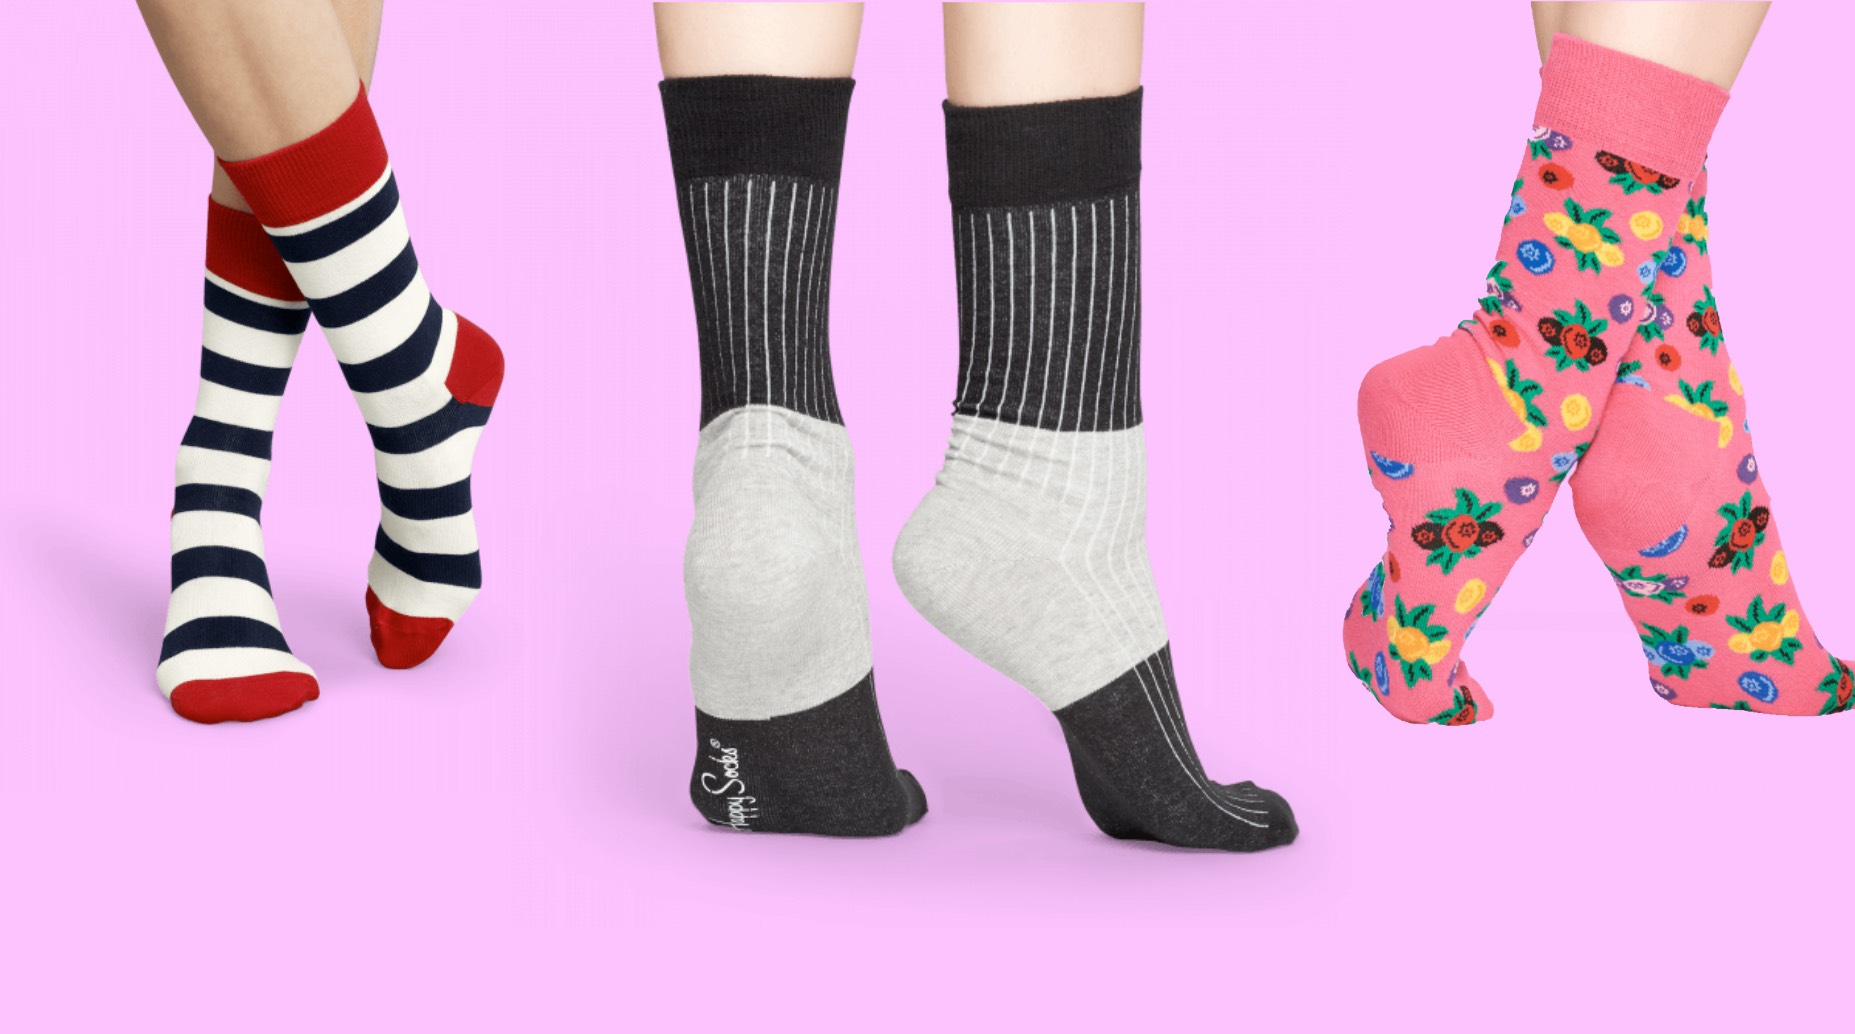 SUSTAINABLE BUSINESS: HAPPY SOCKS!